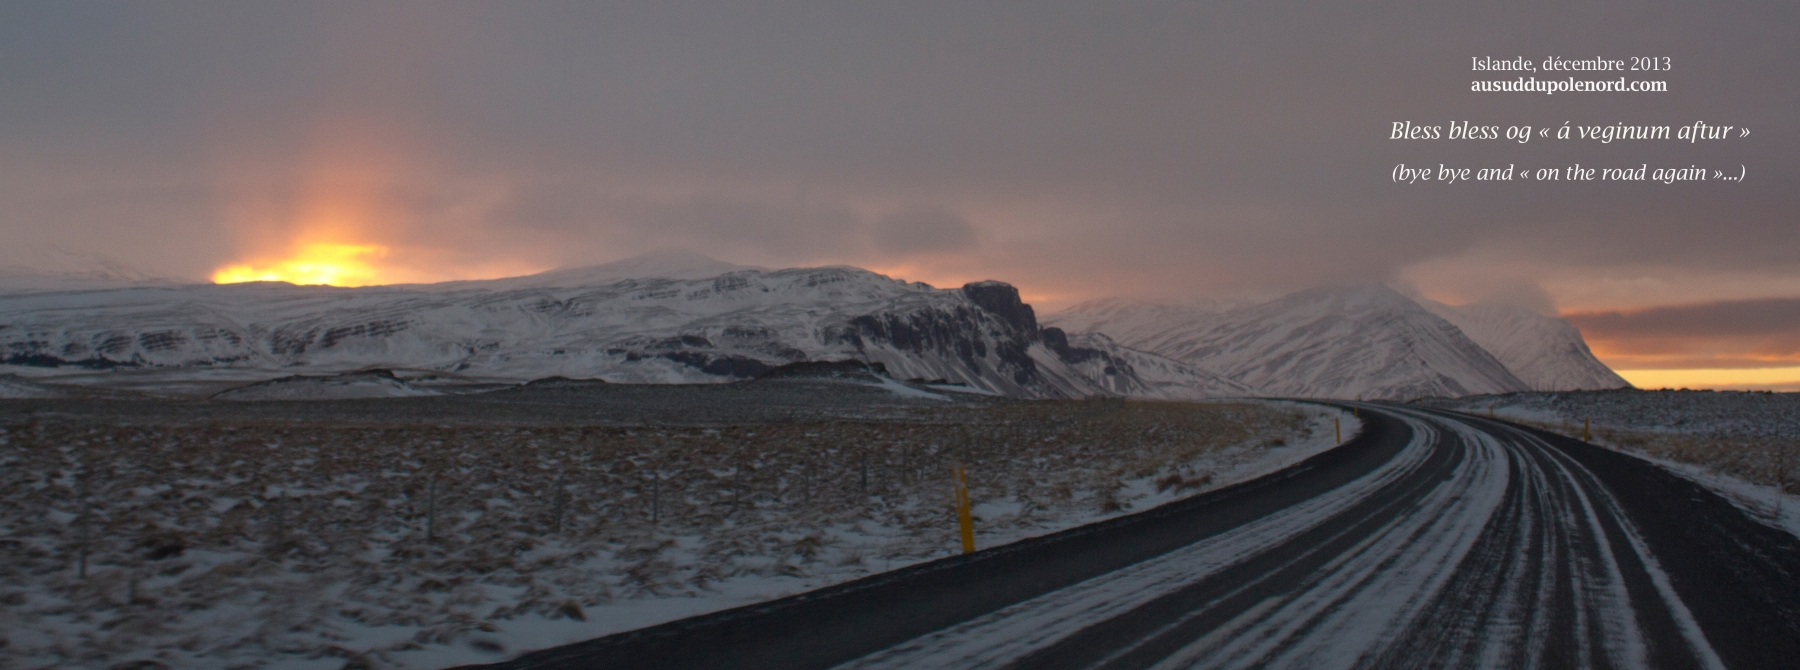 Hiver polaire on the road again en Islande